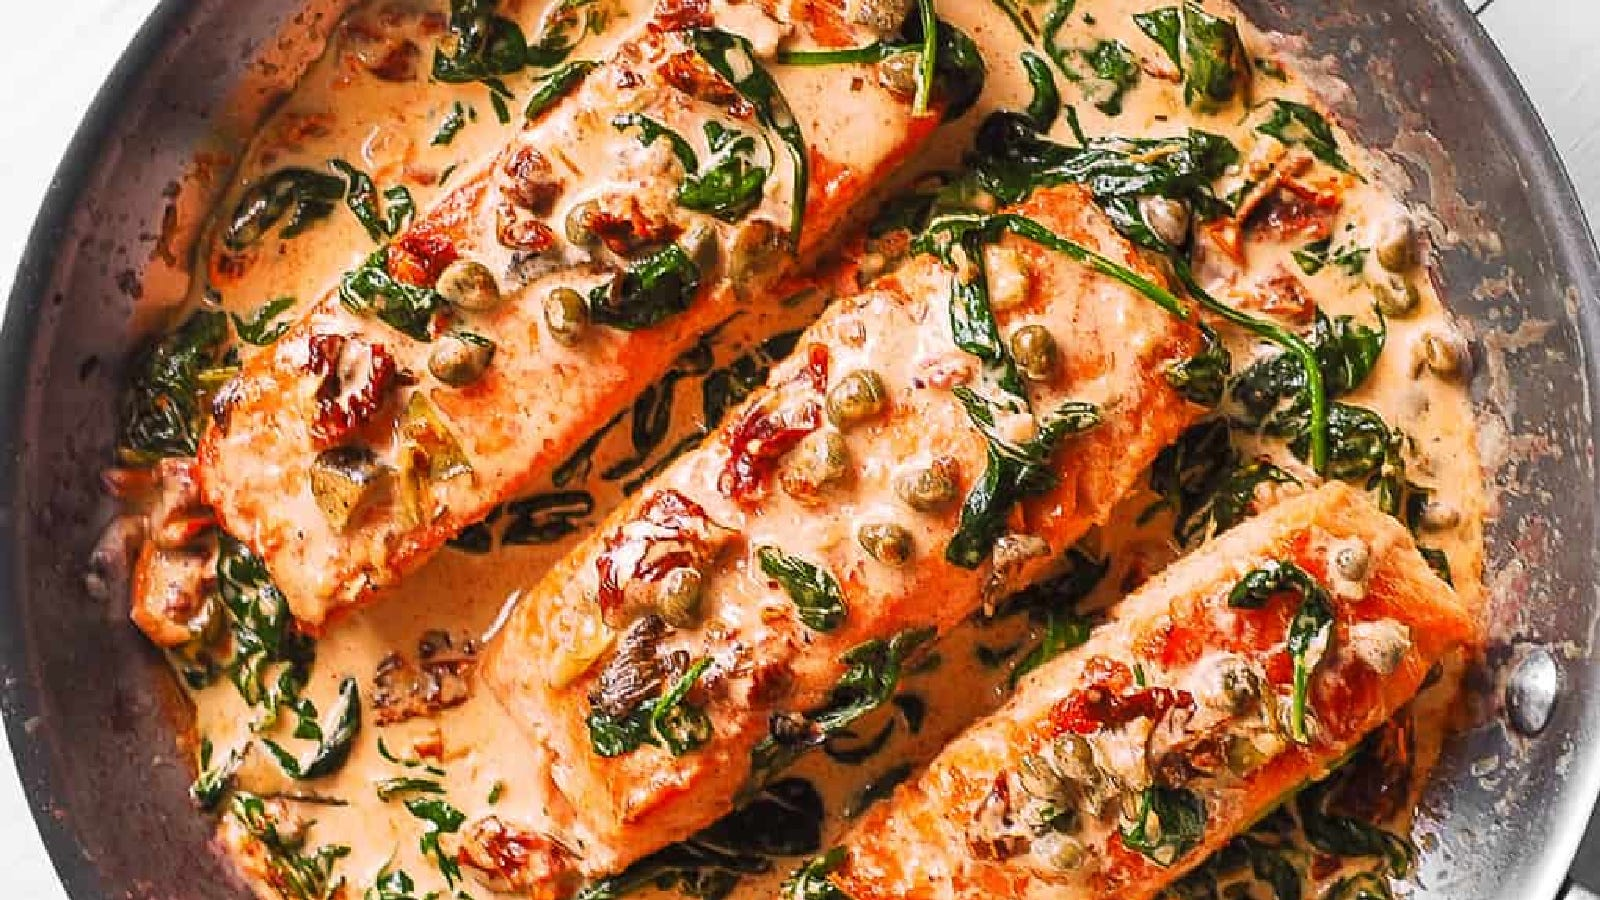 A skillet filled with a few salmon fillets in a Tuscan cream sauce filled with spinach, artichoke, sundried tomato, and capers.